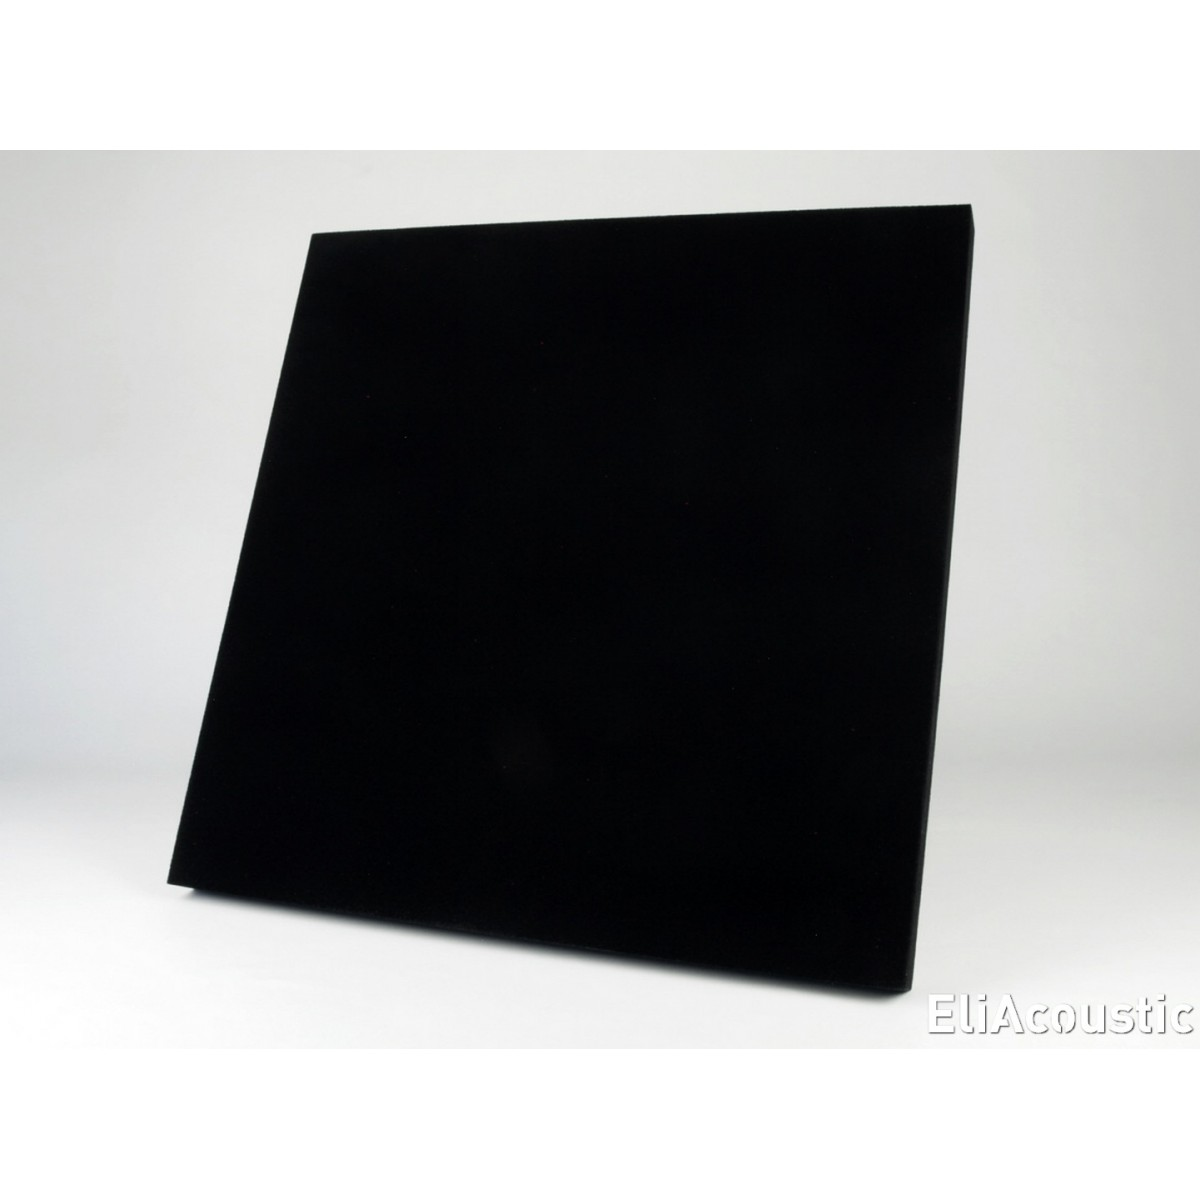 EliAcoustic Regular 60.4 Premiere Black (Ref 2802)